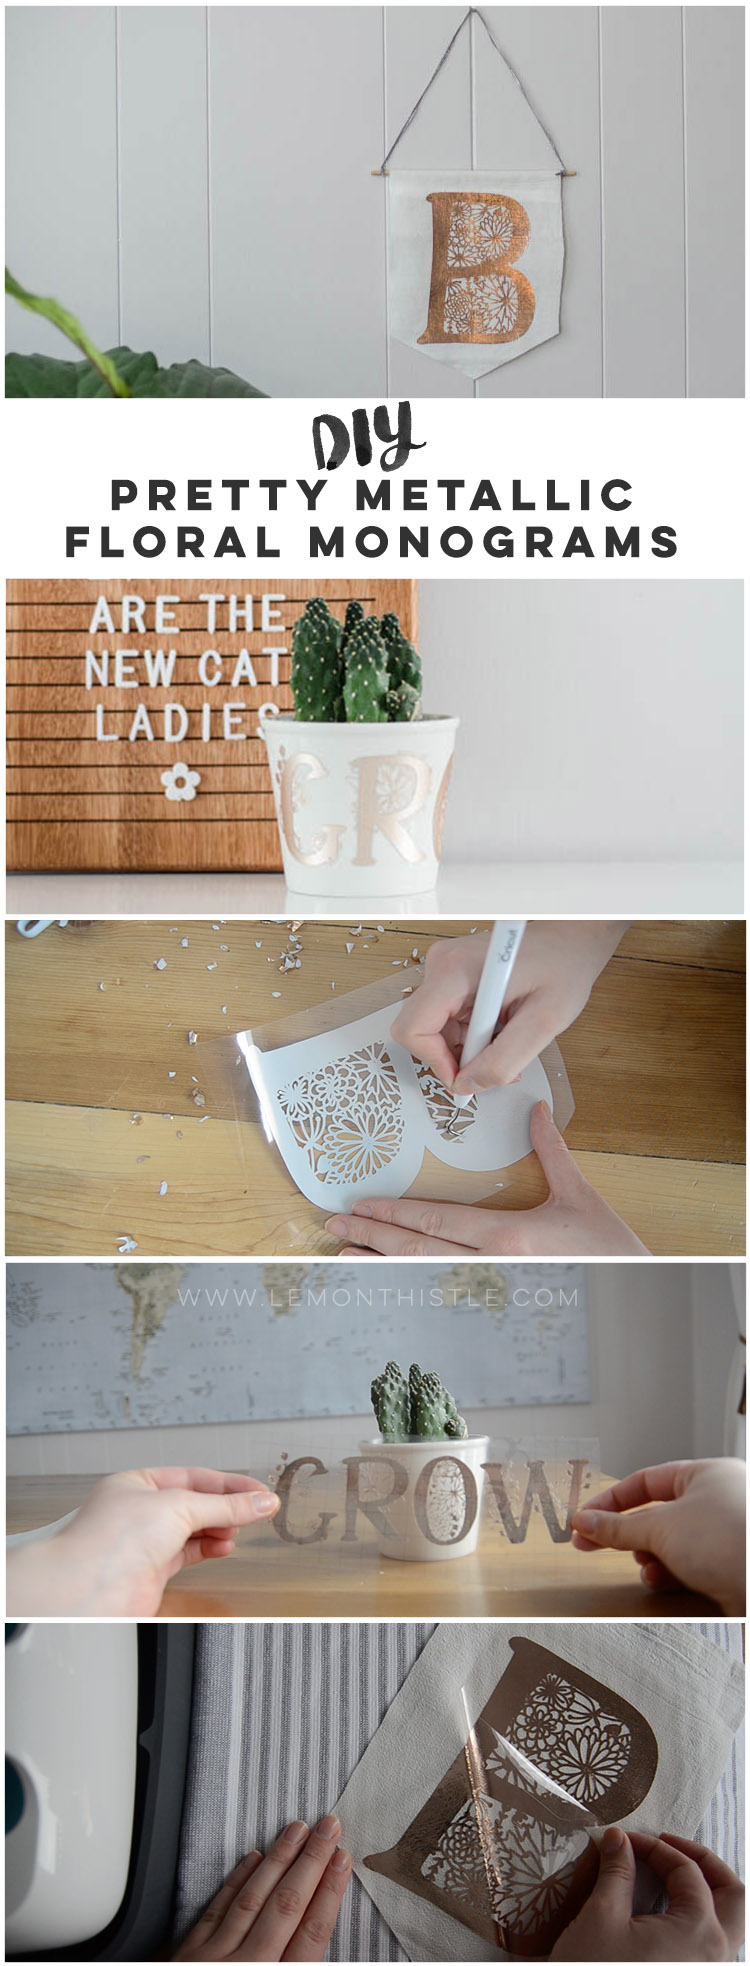 Long image collage with DIY rose gold foil pennant and DIY plant pot with floral word GROW